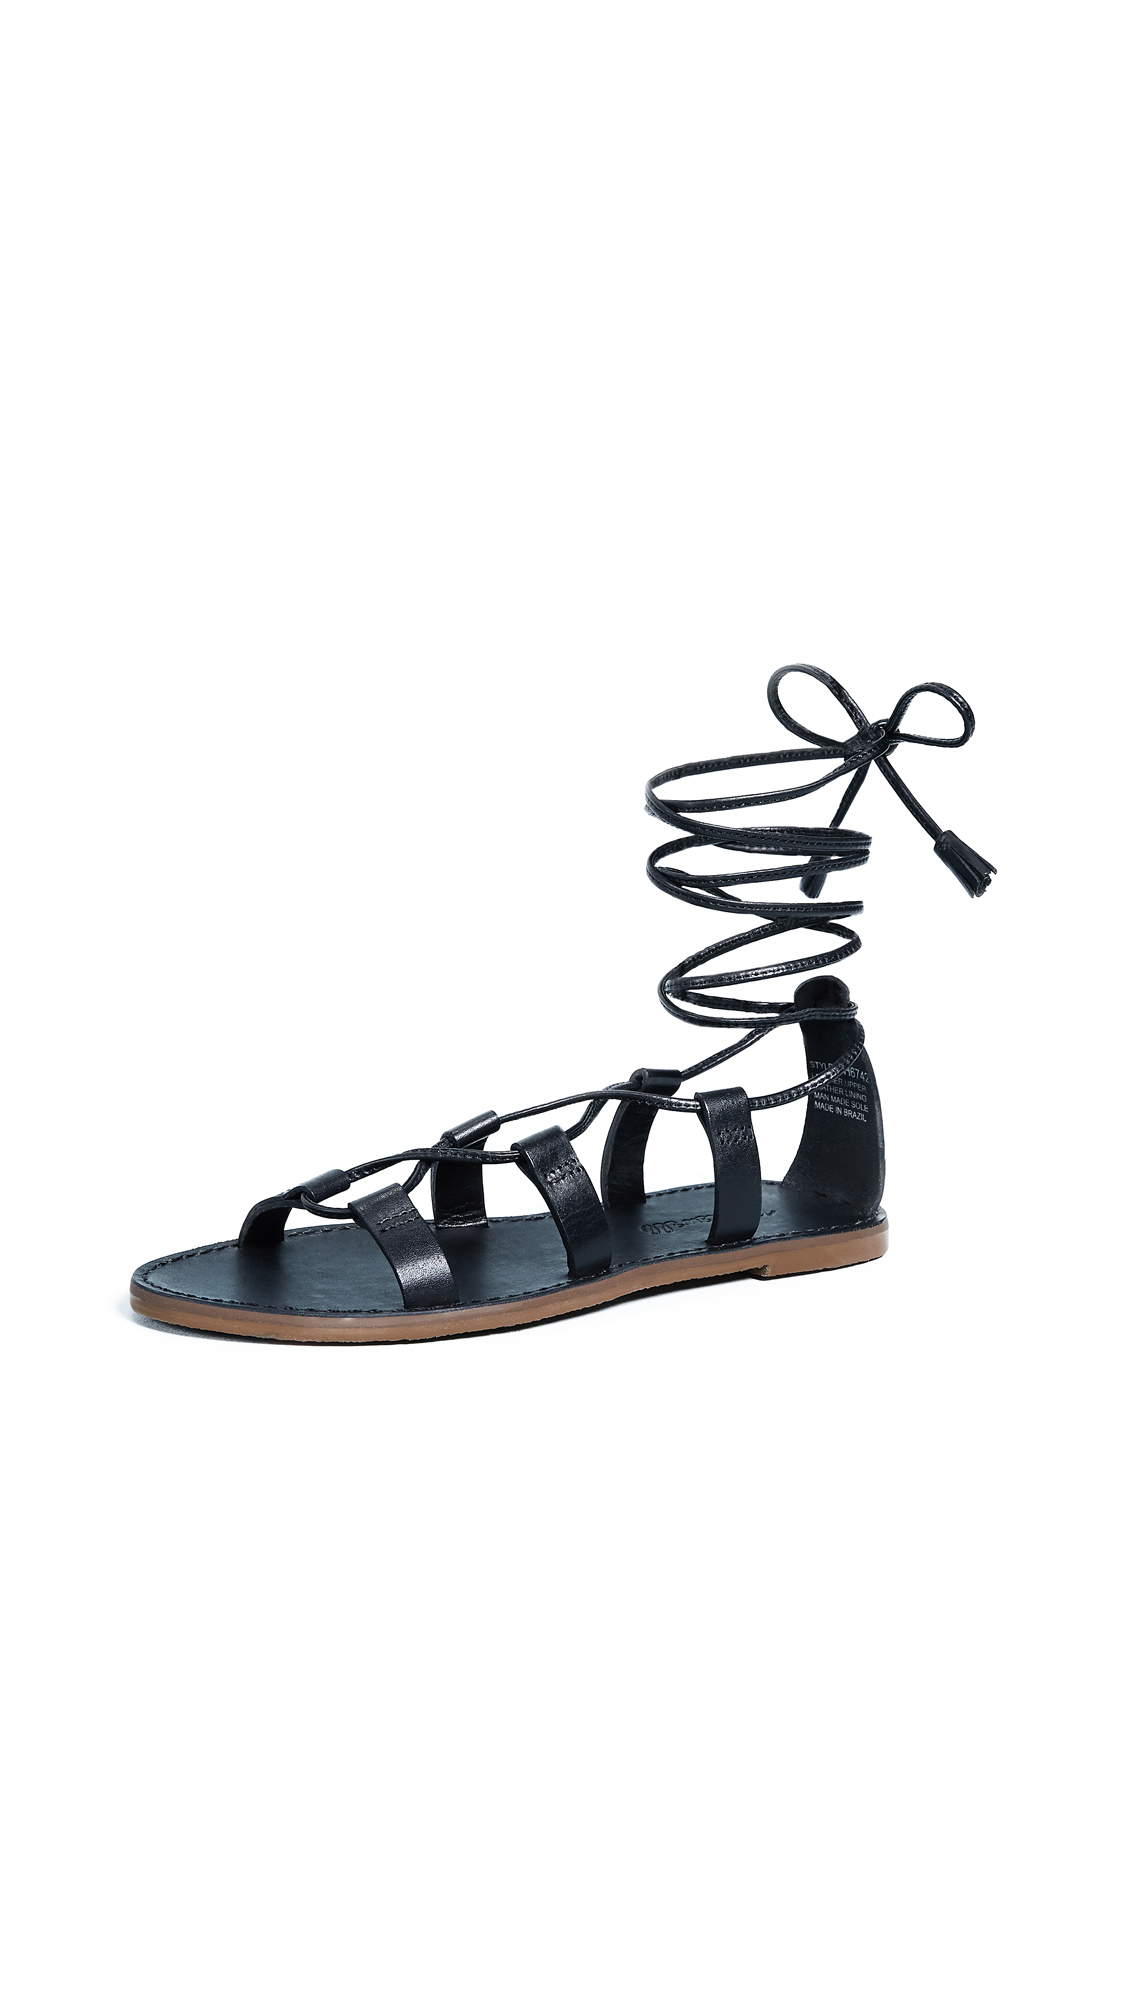 Madewell Outstock Lace Up Sandals - True Black